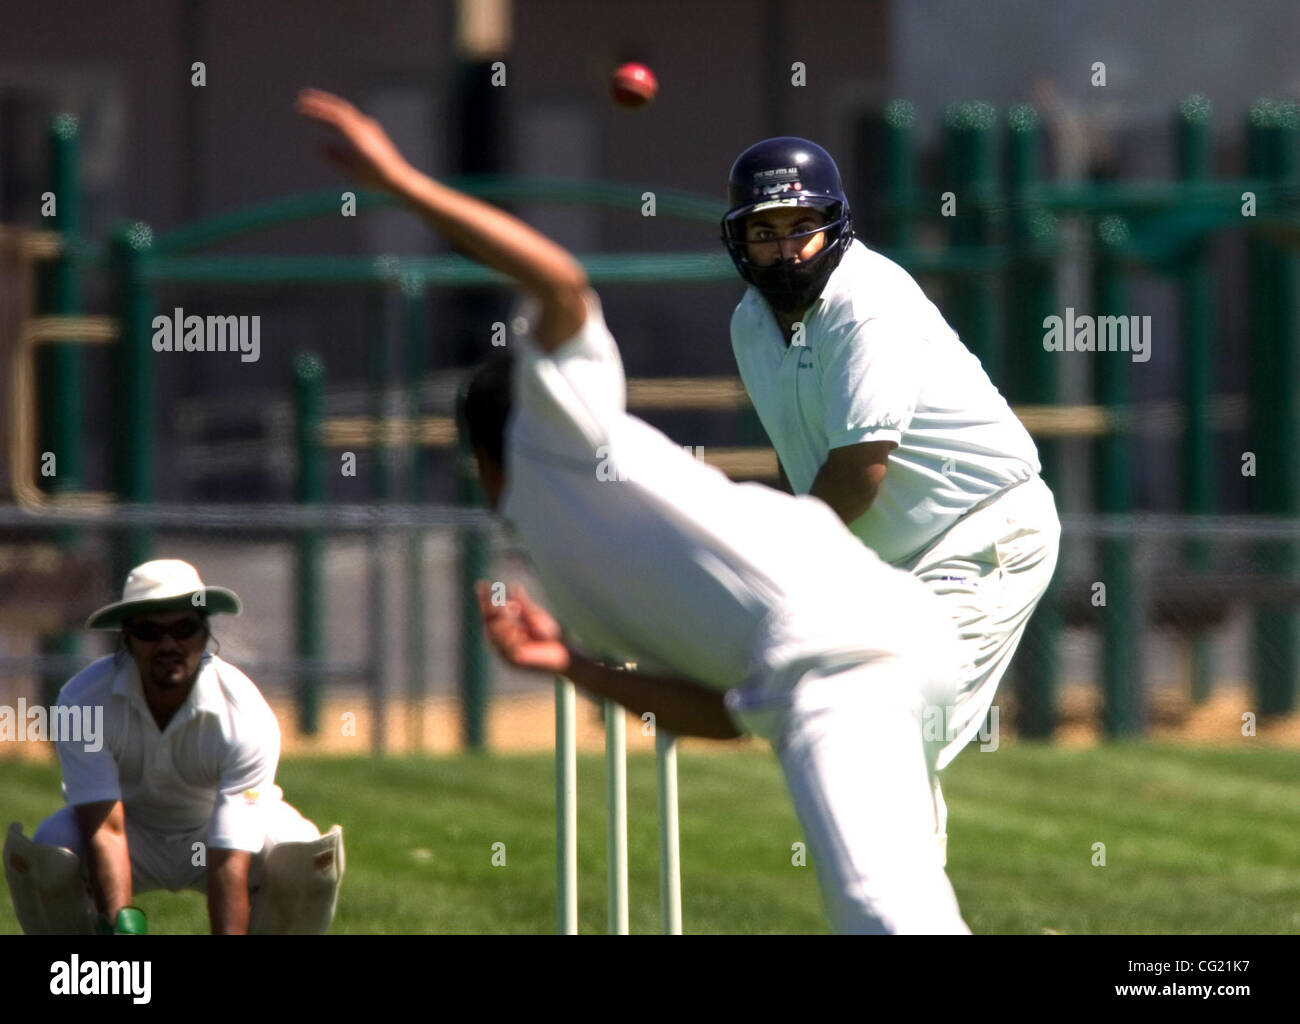 Monty Bhatia (cq - in helmet), of the Roseville Cricket Club, faces a Tiger Cricket Club (Sacramento) bowler Saturday, - Stock Image